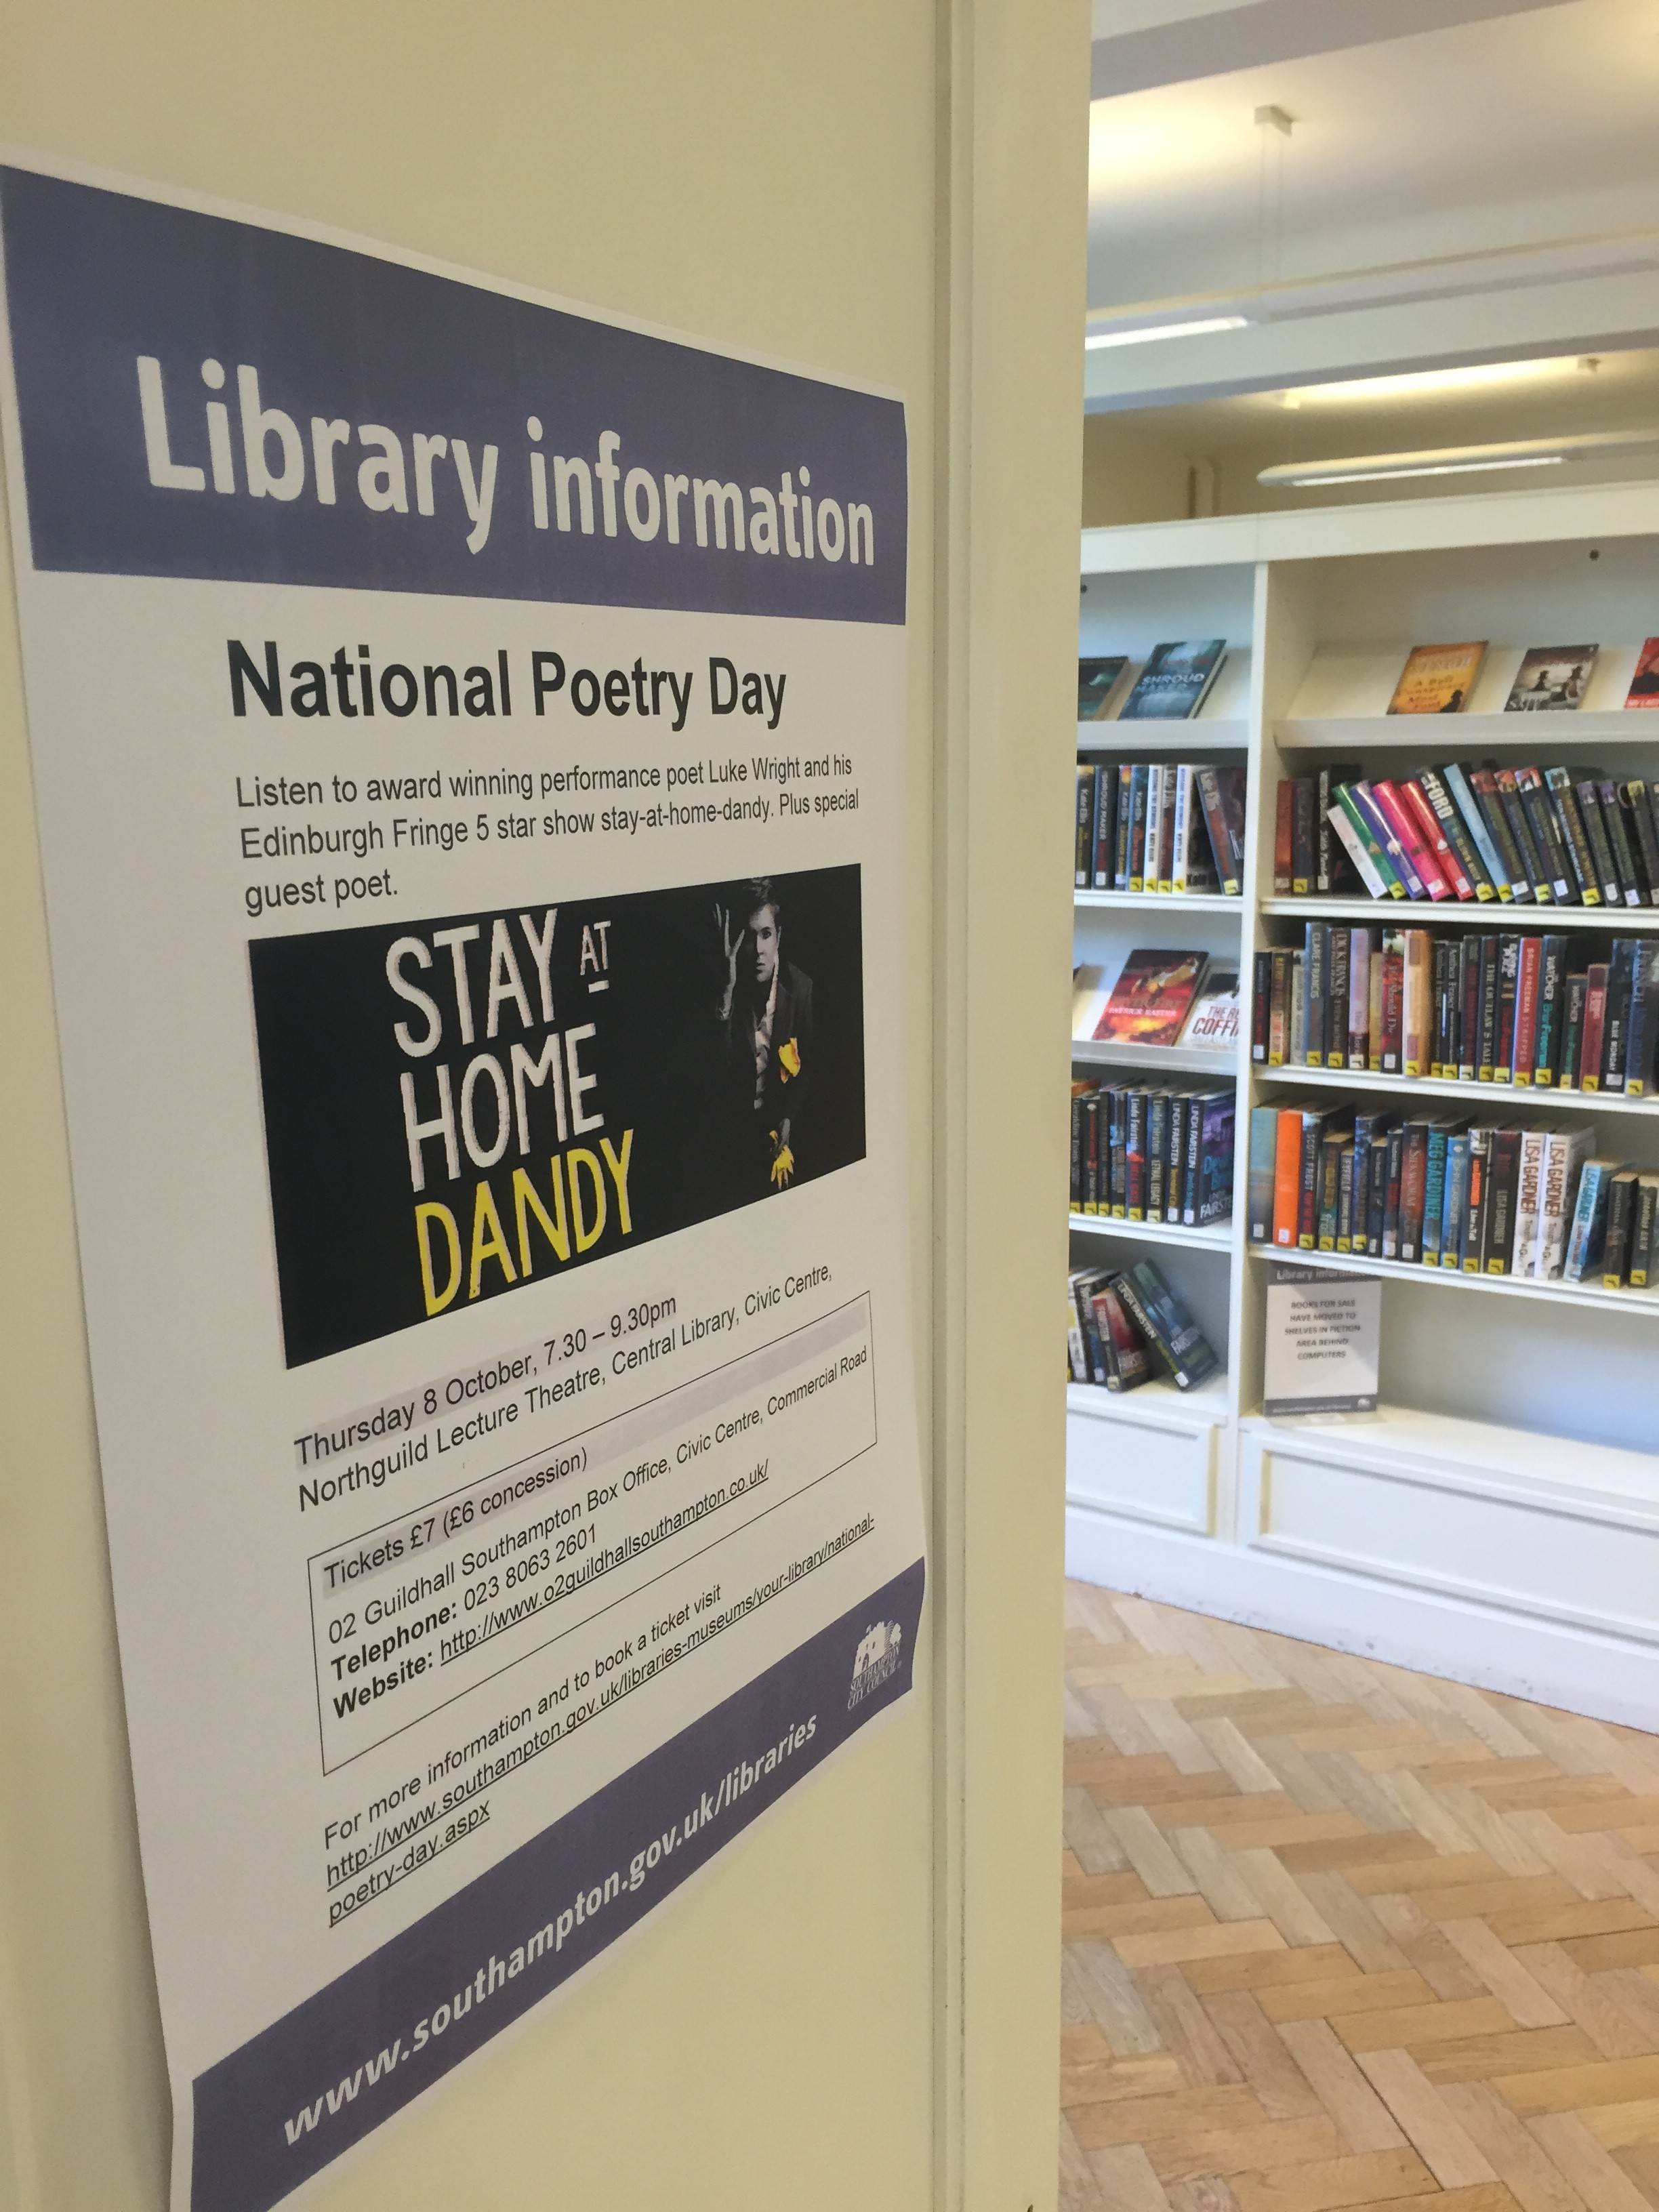 'Light' comes to Southampton for National Poetry Day